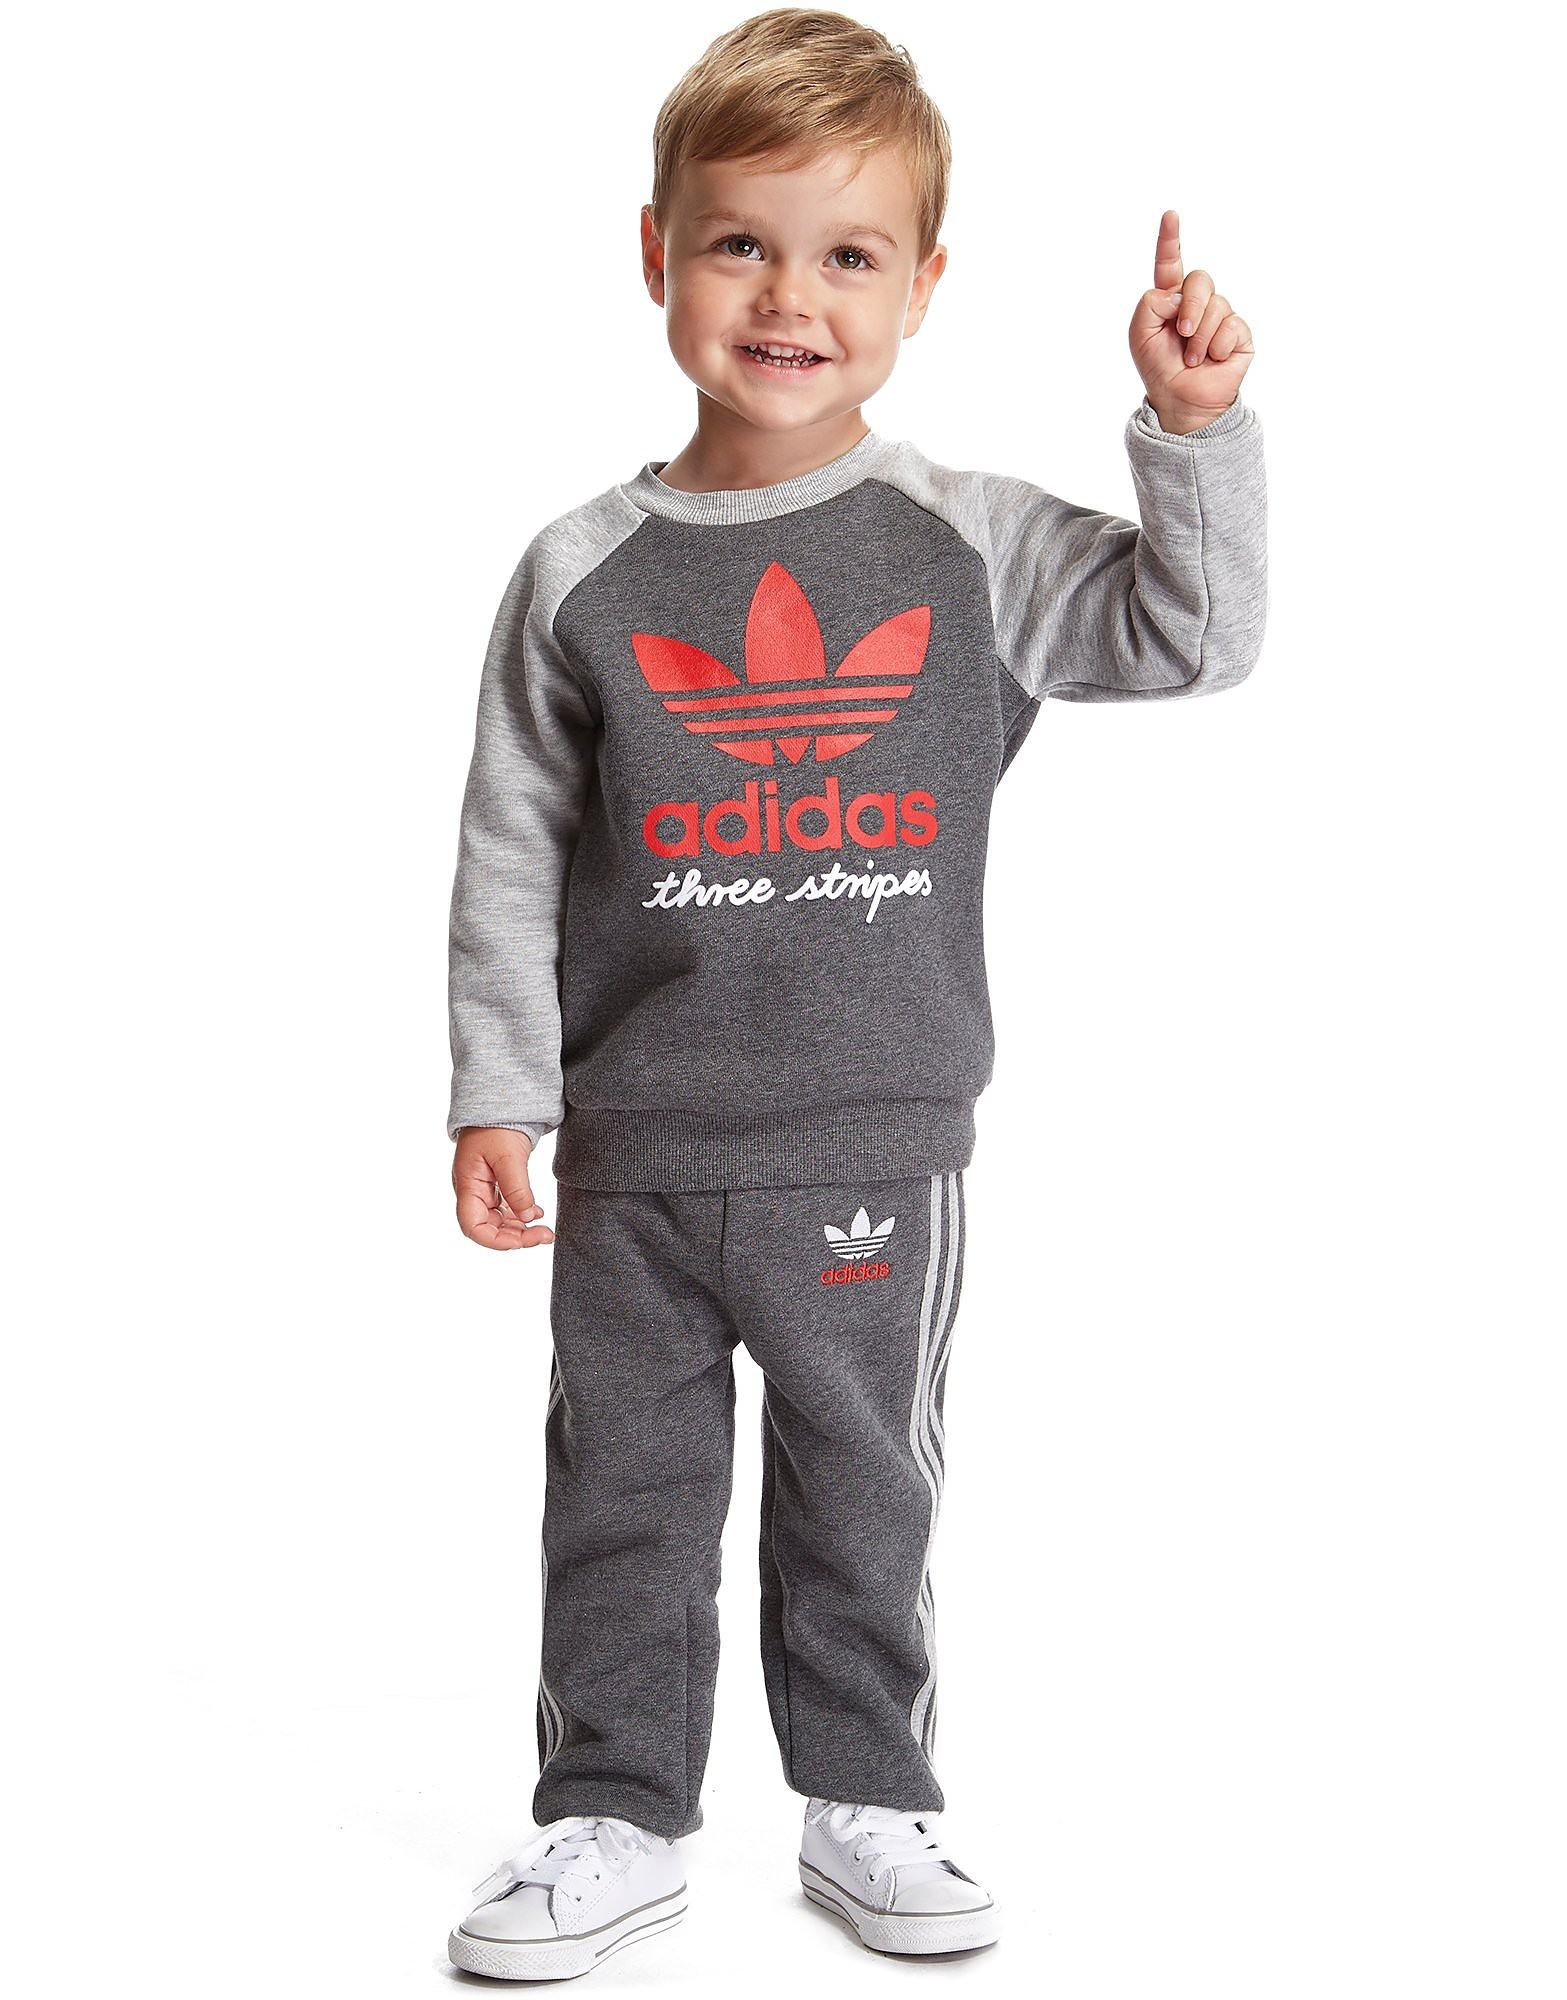 adidas Originals Three Stripes Suit Infant